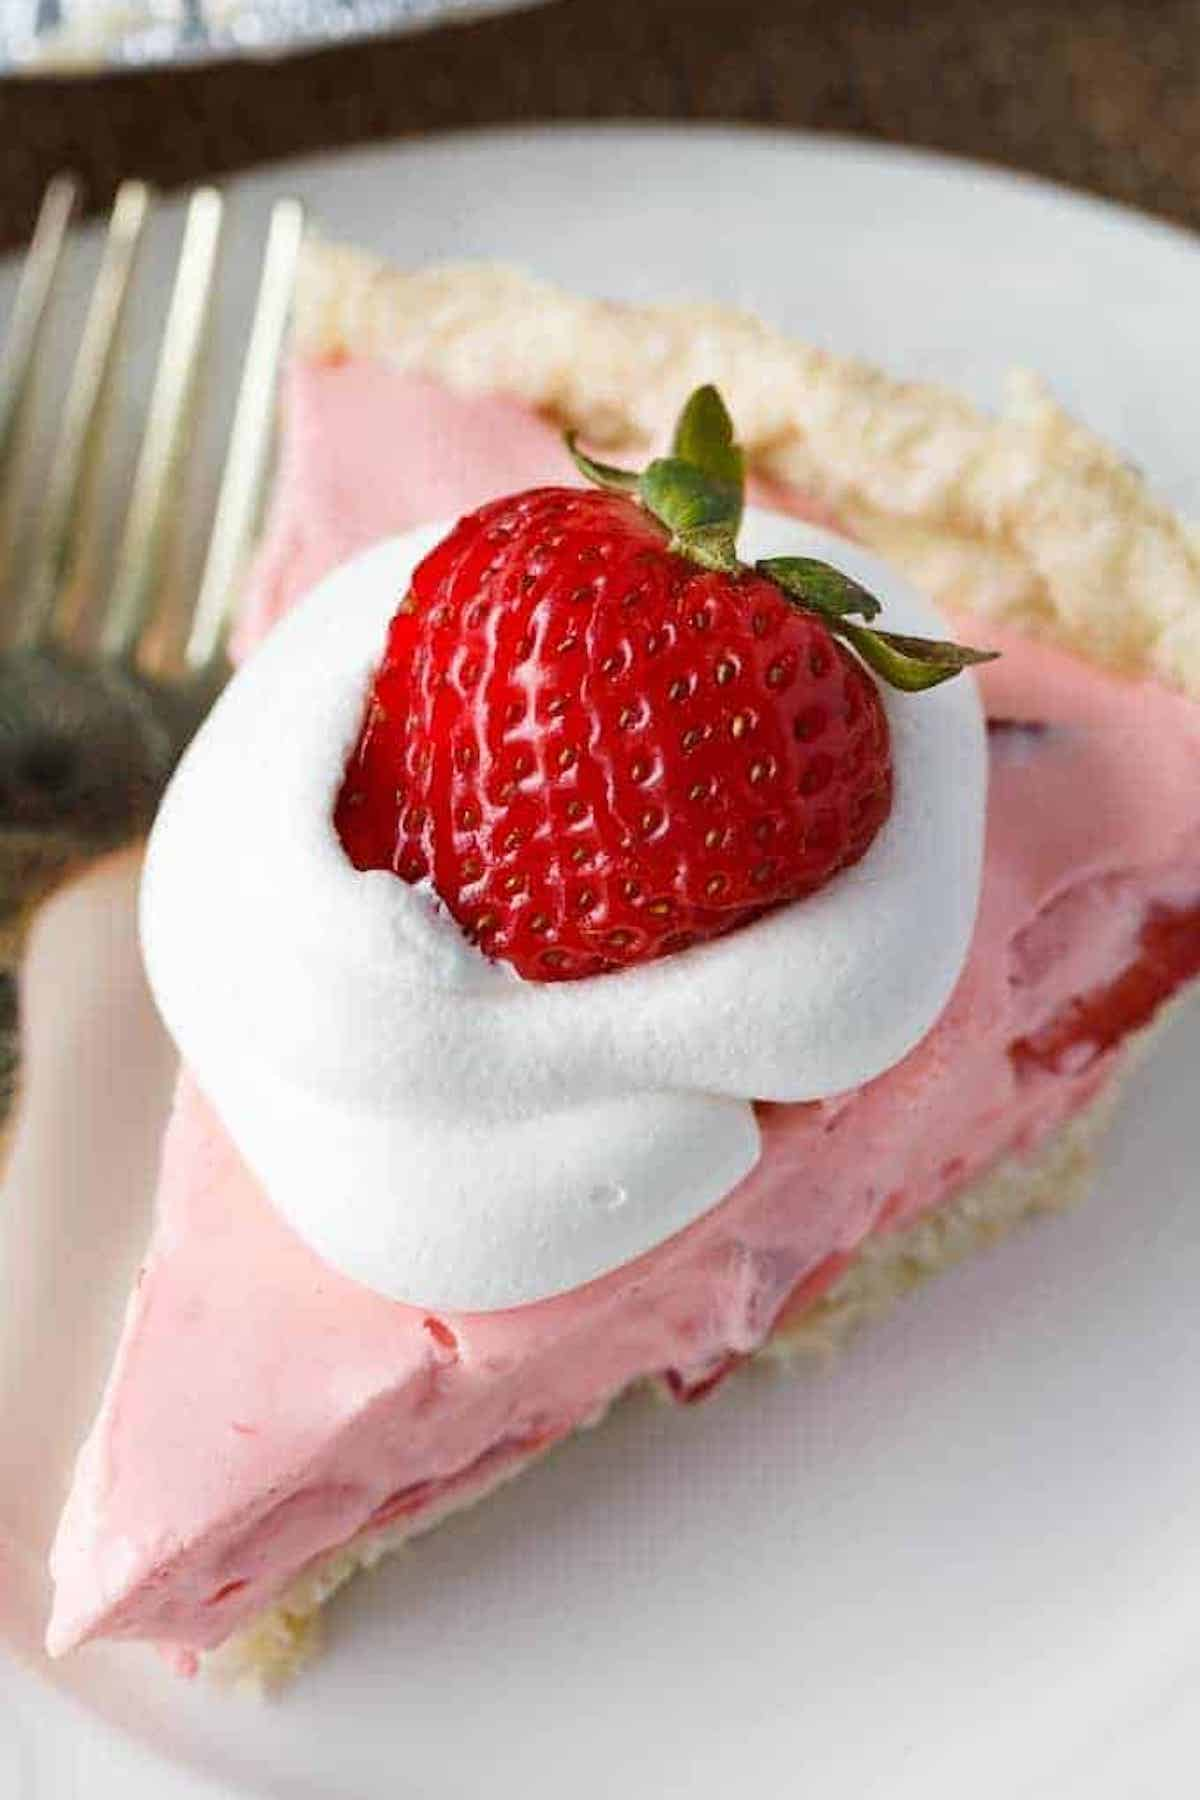 A slice of pink strawberry cream pie garnished with whipped cream and a whole strawberry sits on a white plate.